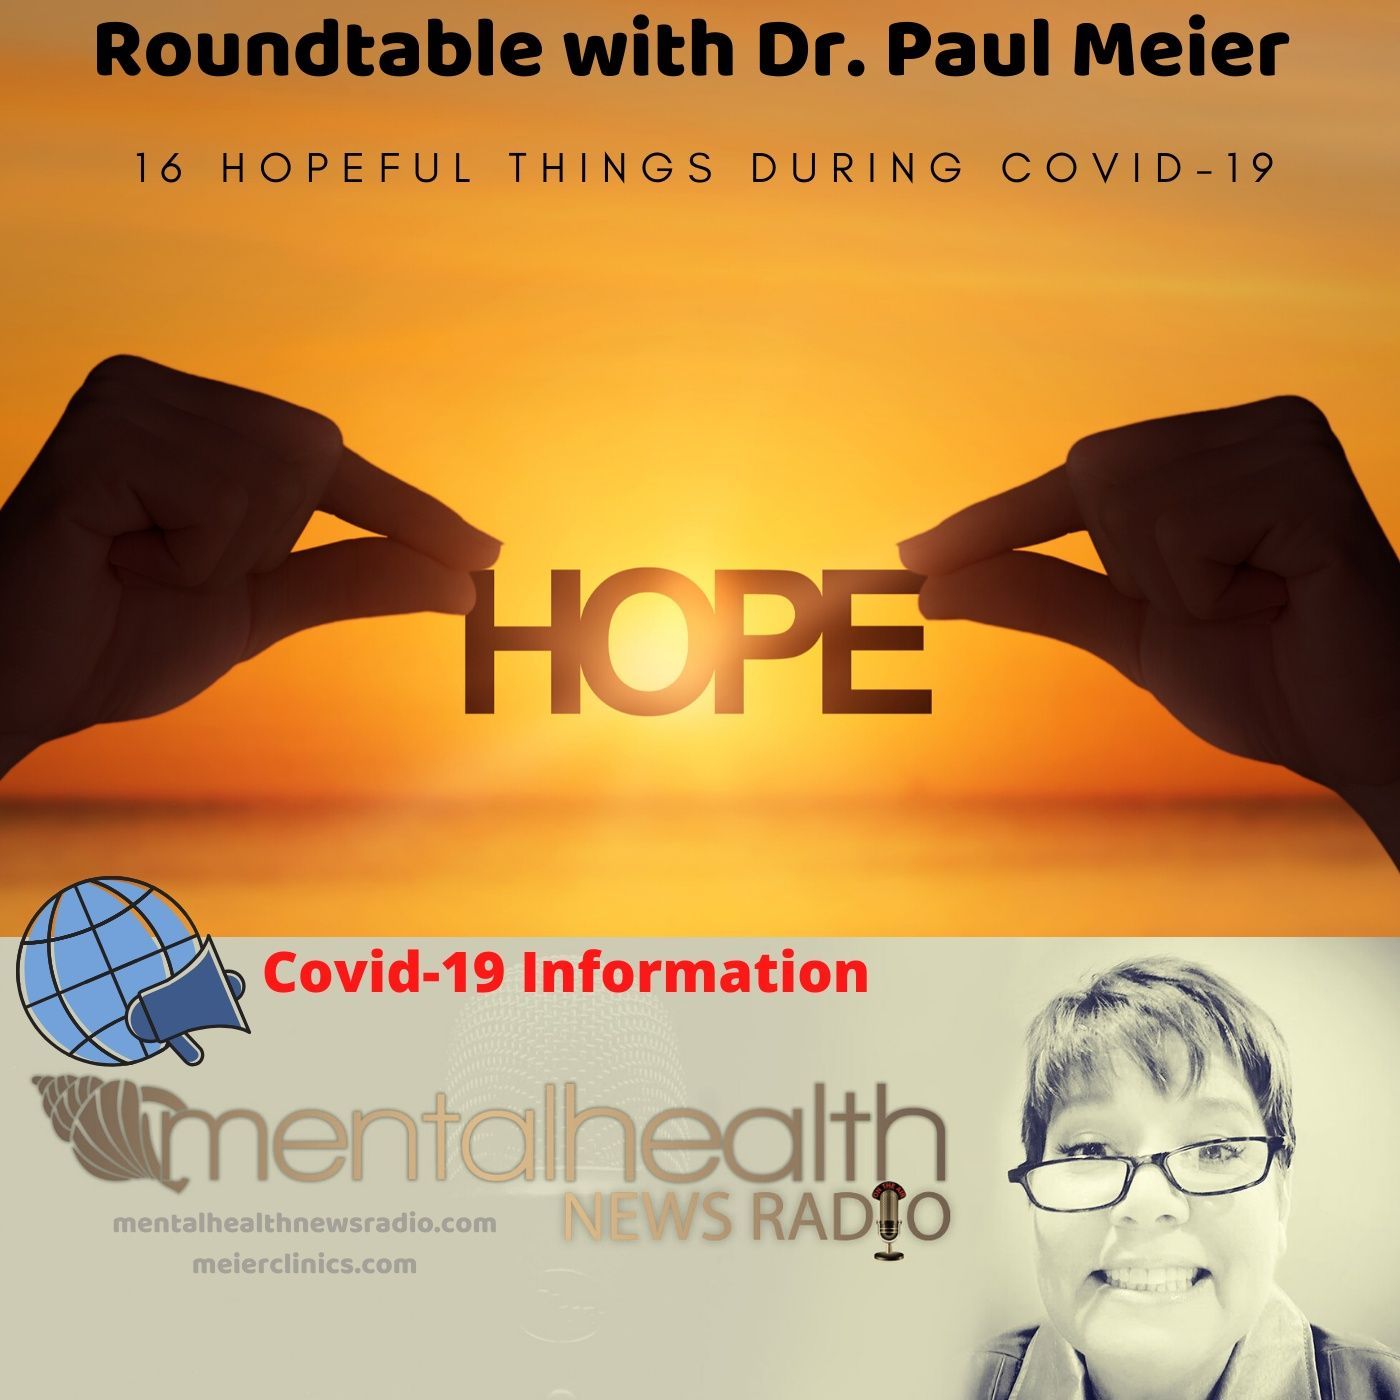 Mental Health News Radio - Roundtable with Dr. Paul Meier: 16 Hopeful Things During Covid-19